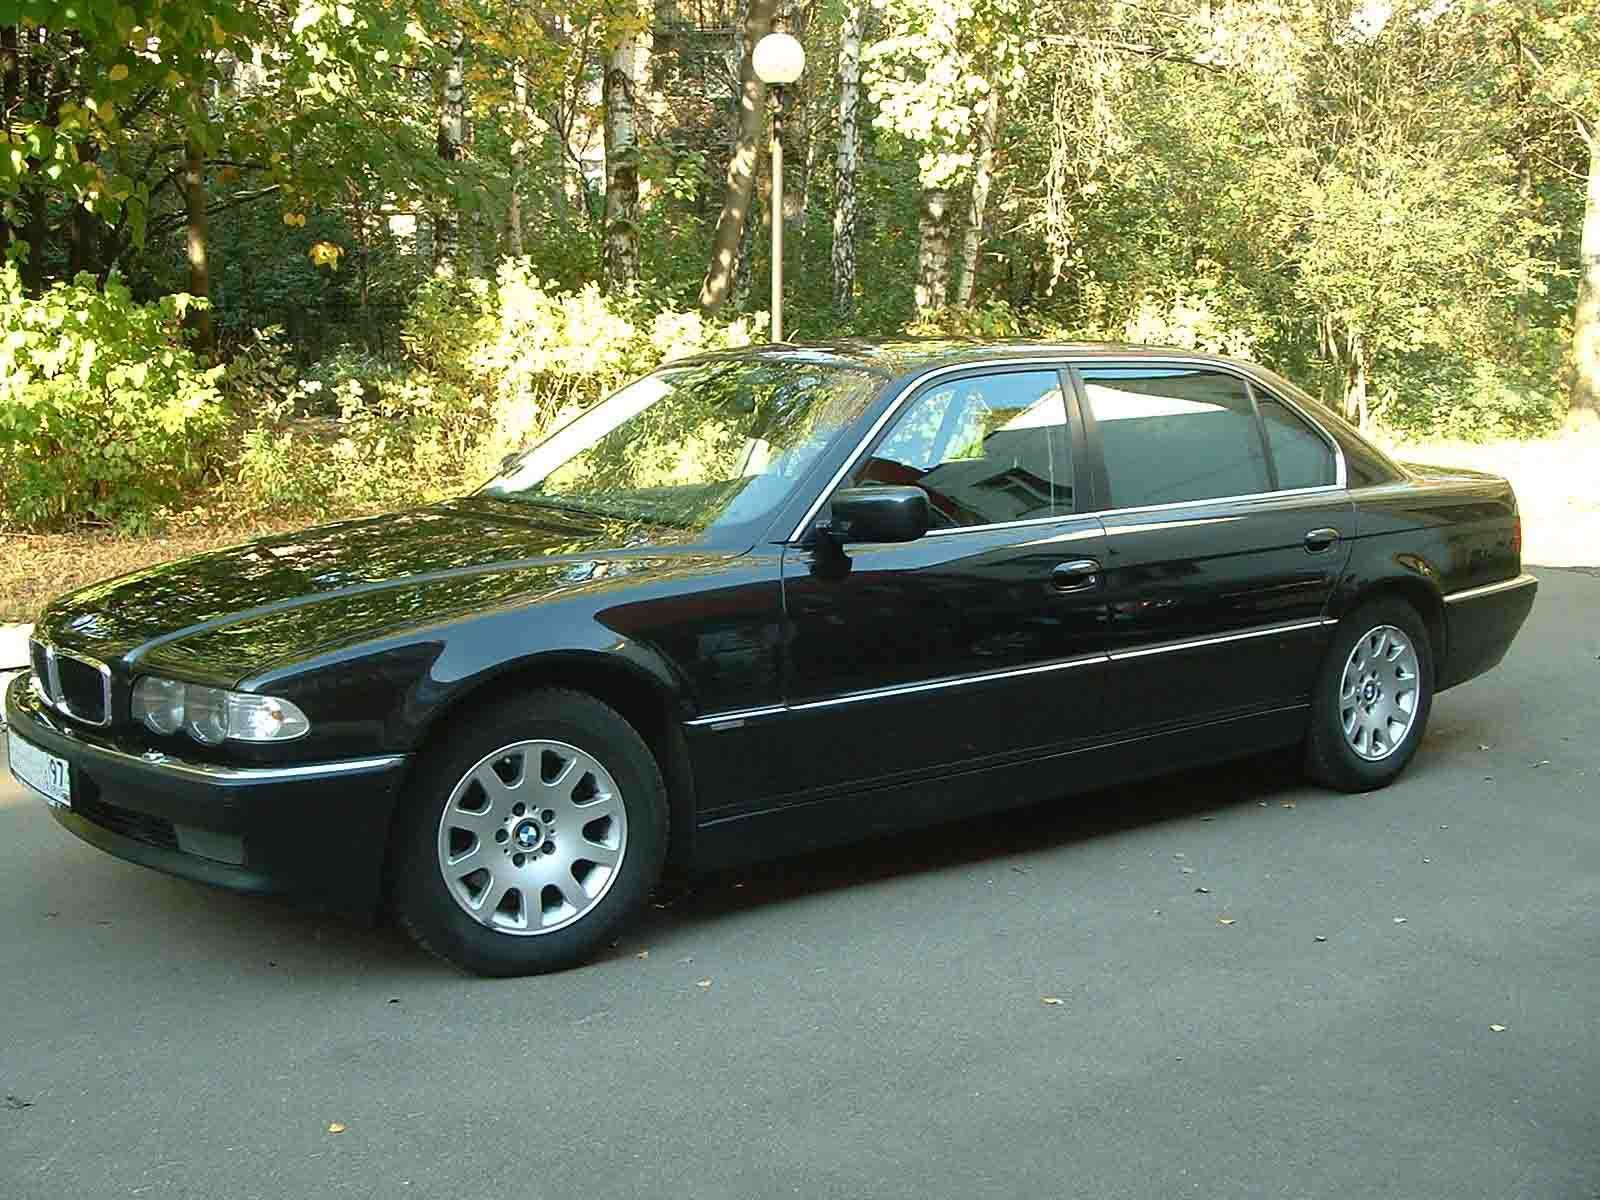 2000 BMW 740il. ← Is this a Interier? Yes | No. More photos of BMW 740il